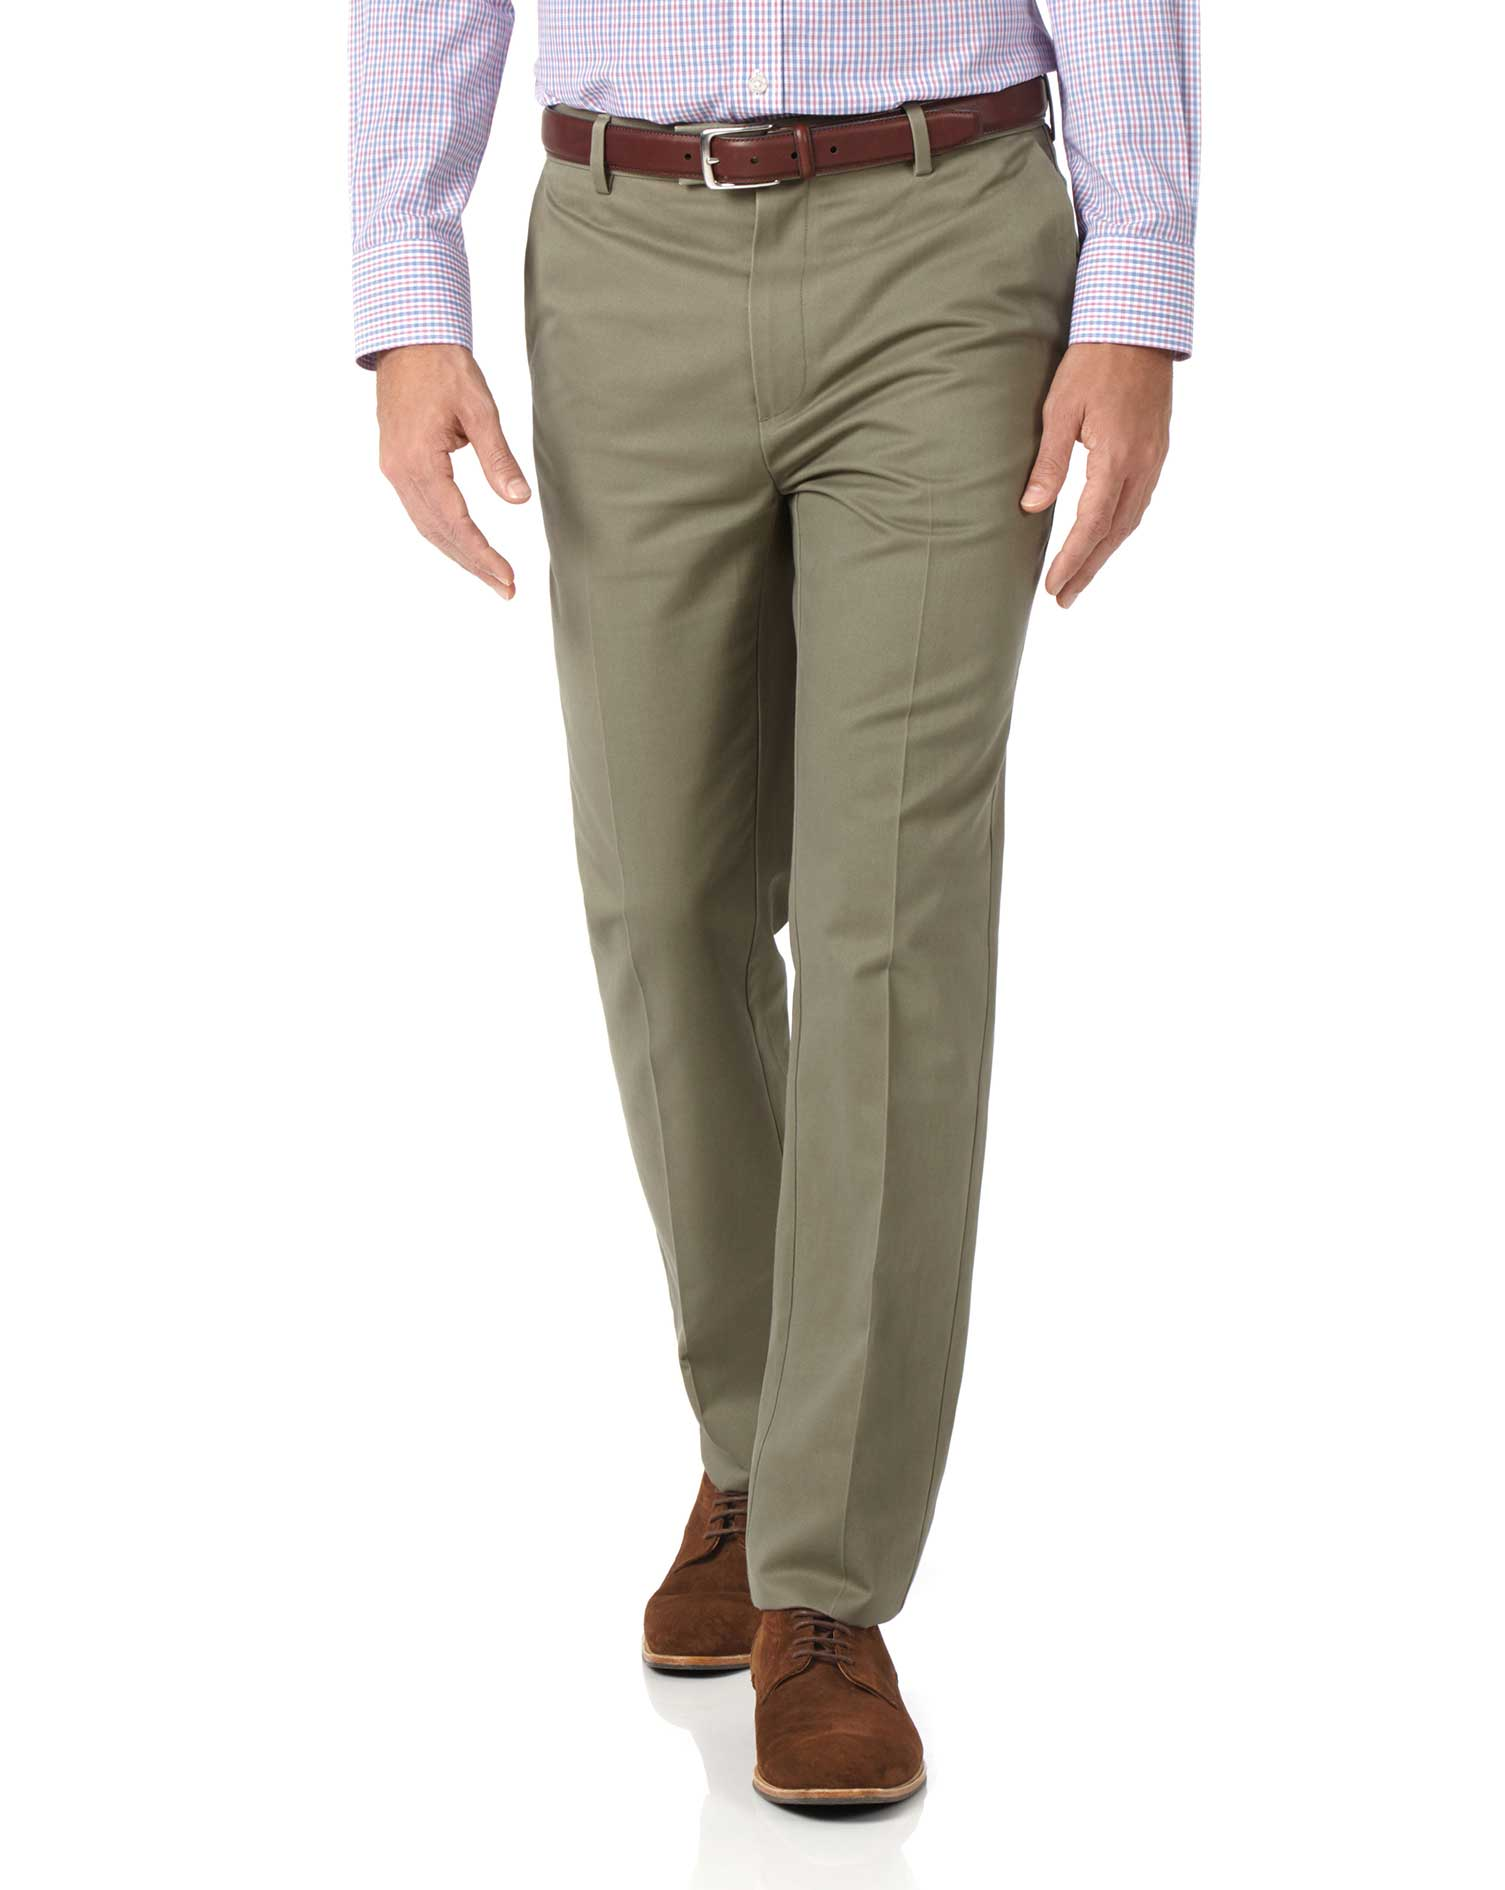 Olive Slim Fit Flat Front Non-Iron Cotton Chino Trousers Size W34 L30 by Charles Tyrwhitt